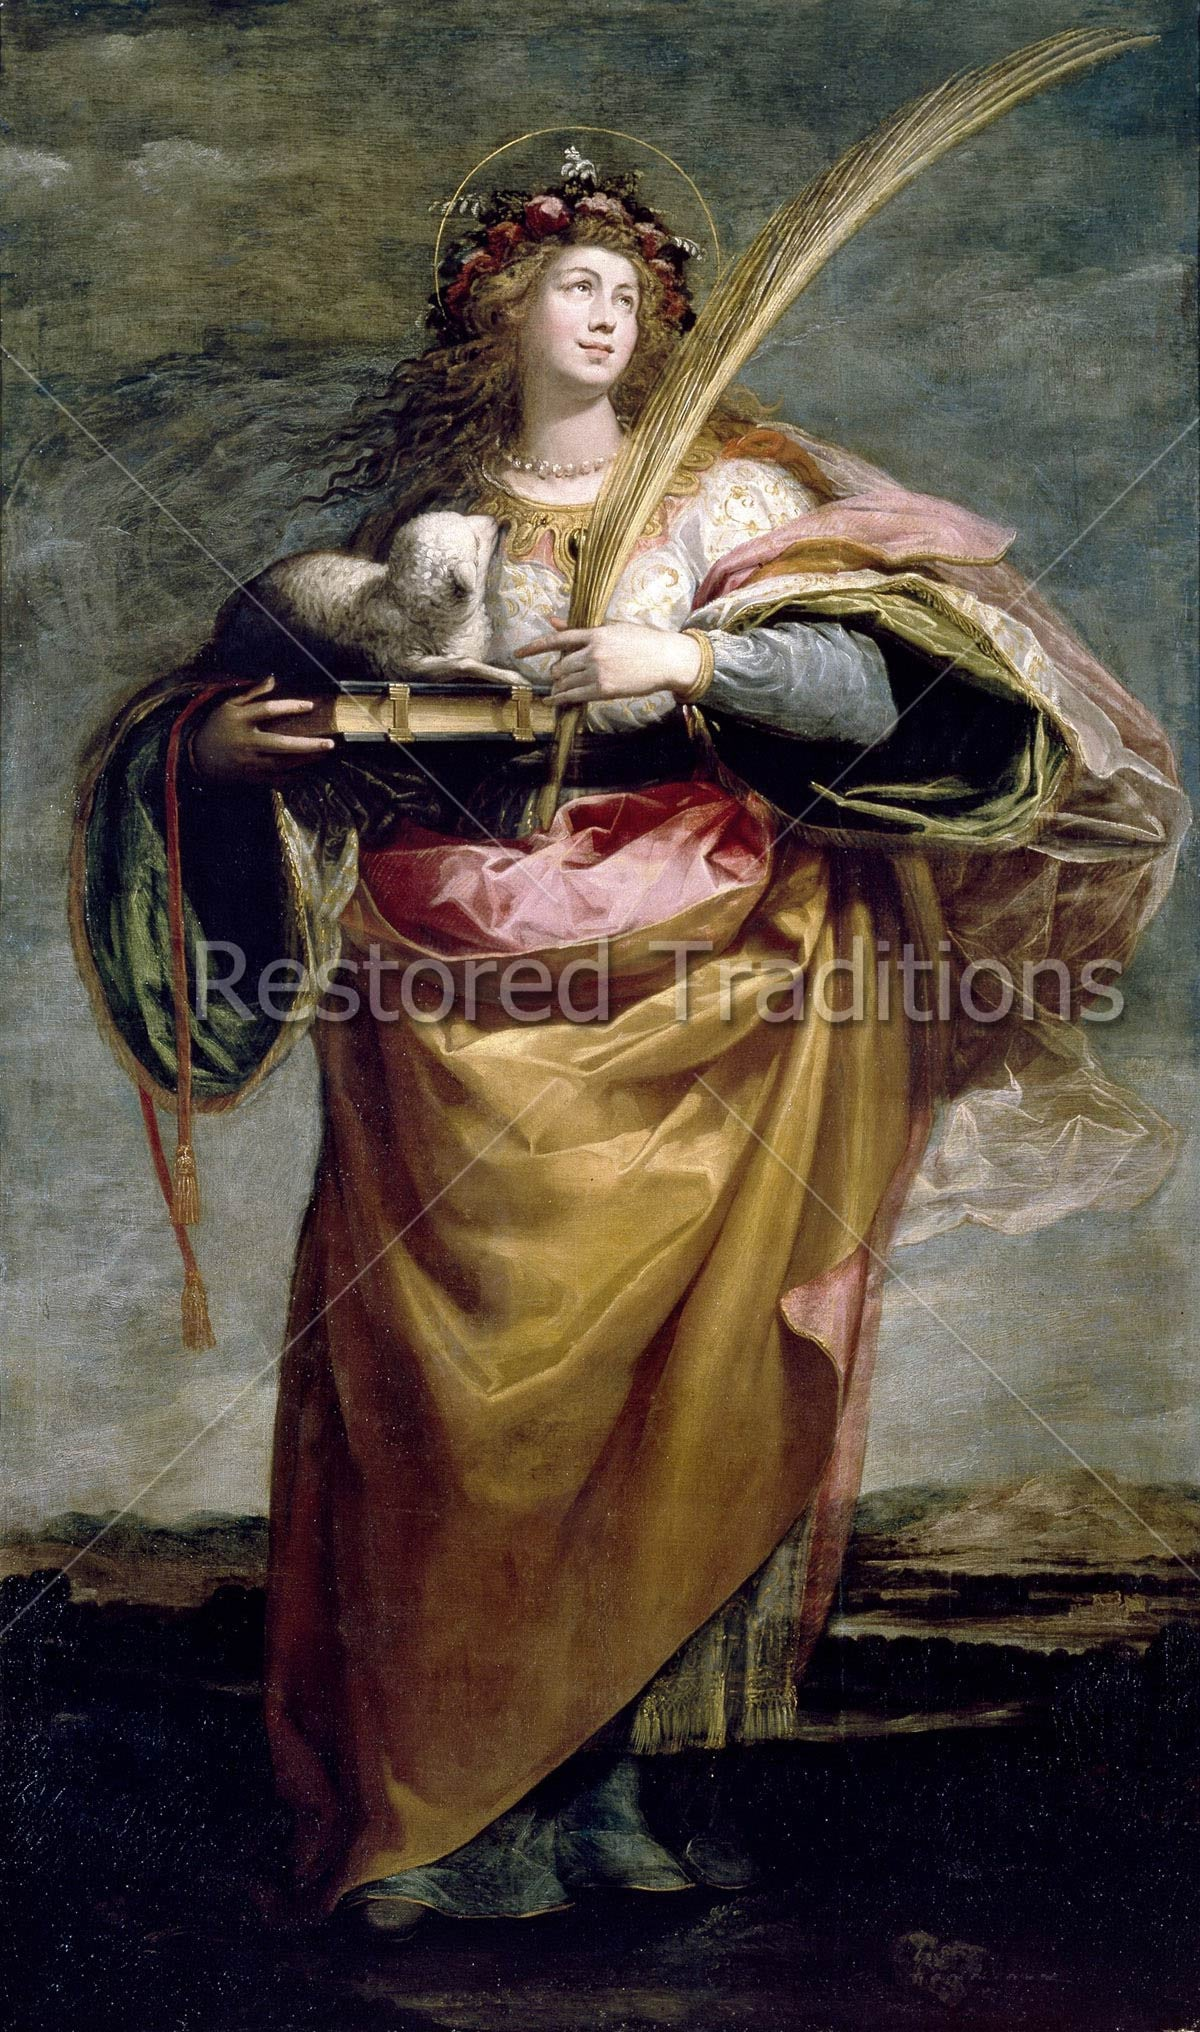 Download Image File Of Saint Agnes Holding A White Lamb